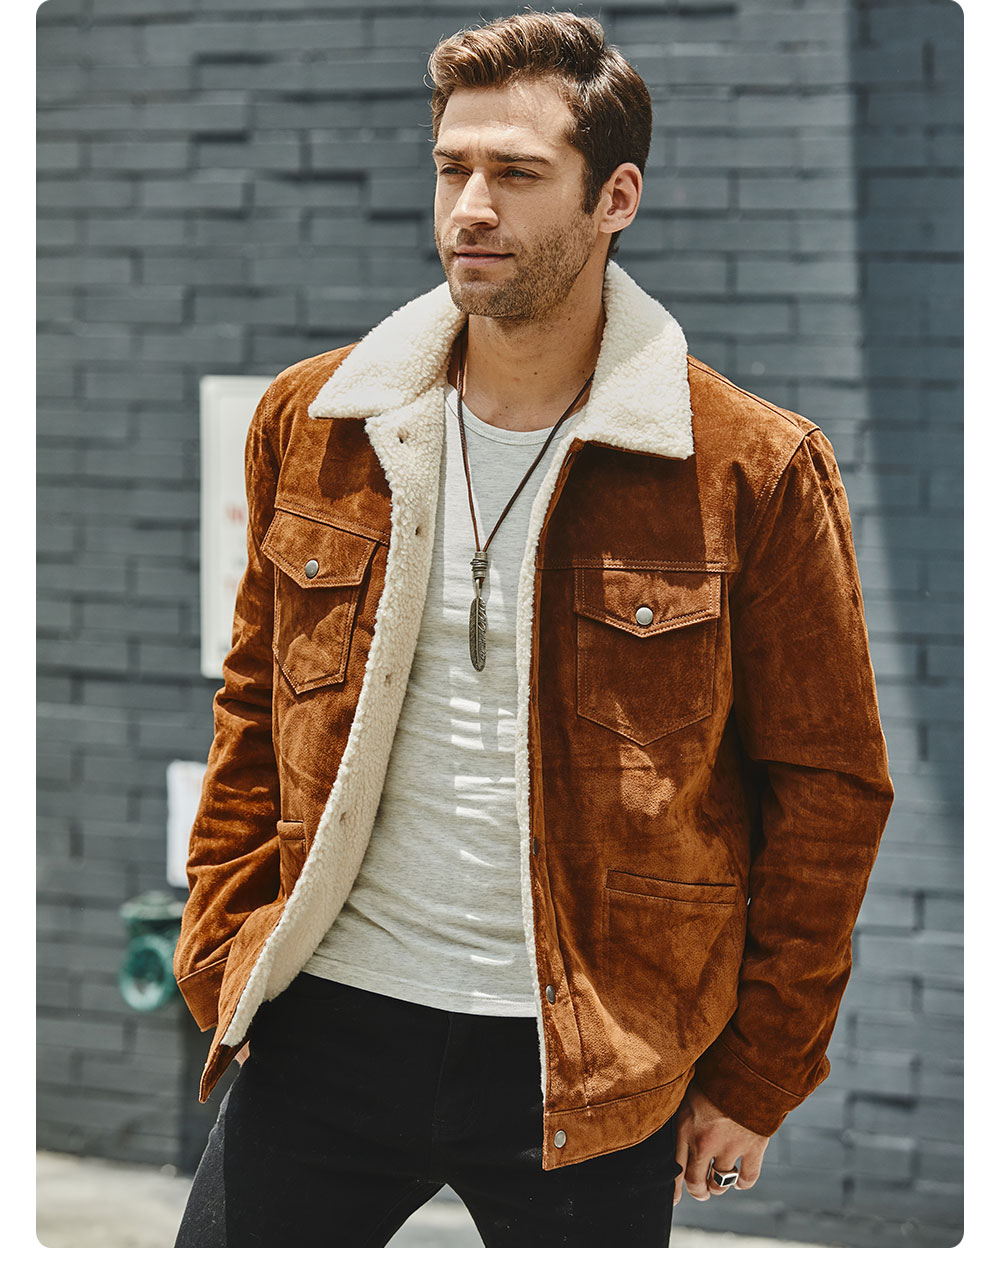 H70a4d1732e8049cc8a33ae941e2086e6q FLAVOR New Men's Real Leather Jacket Genuine Leather With Faux Shearling Warm Coat Men